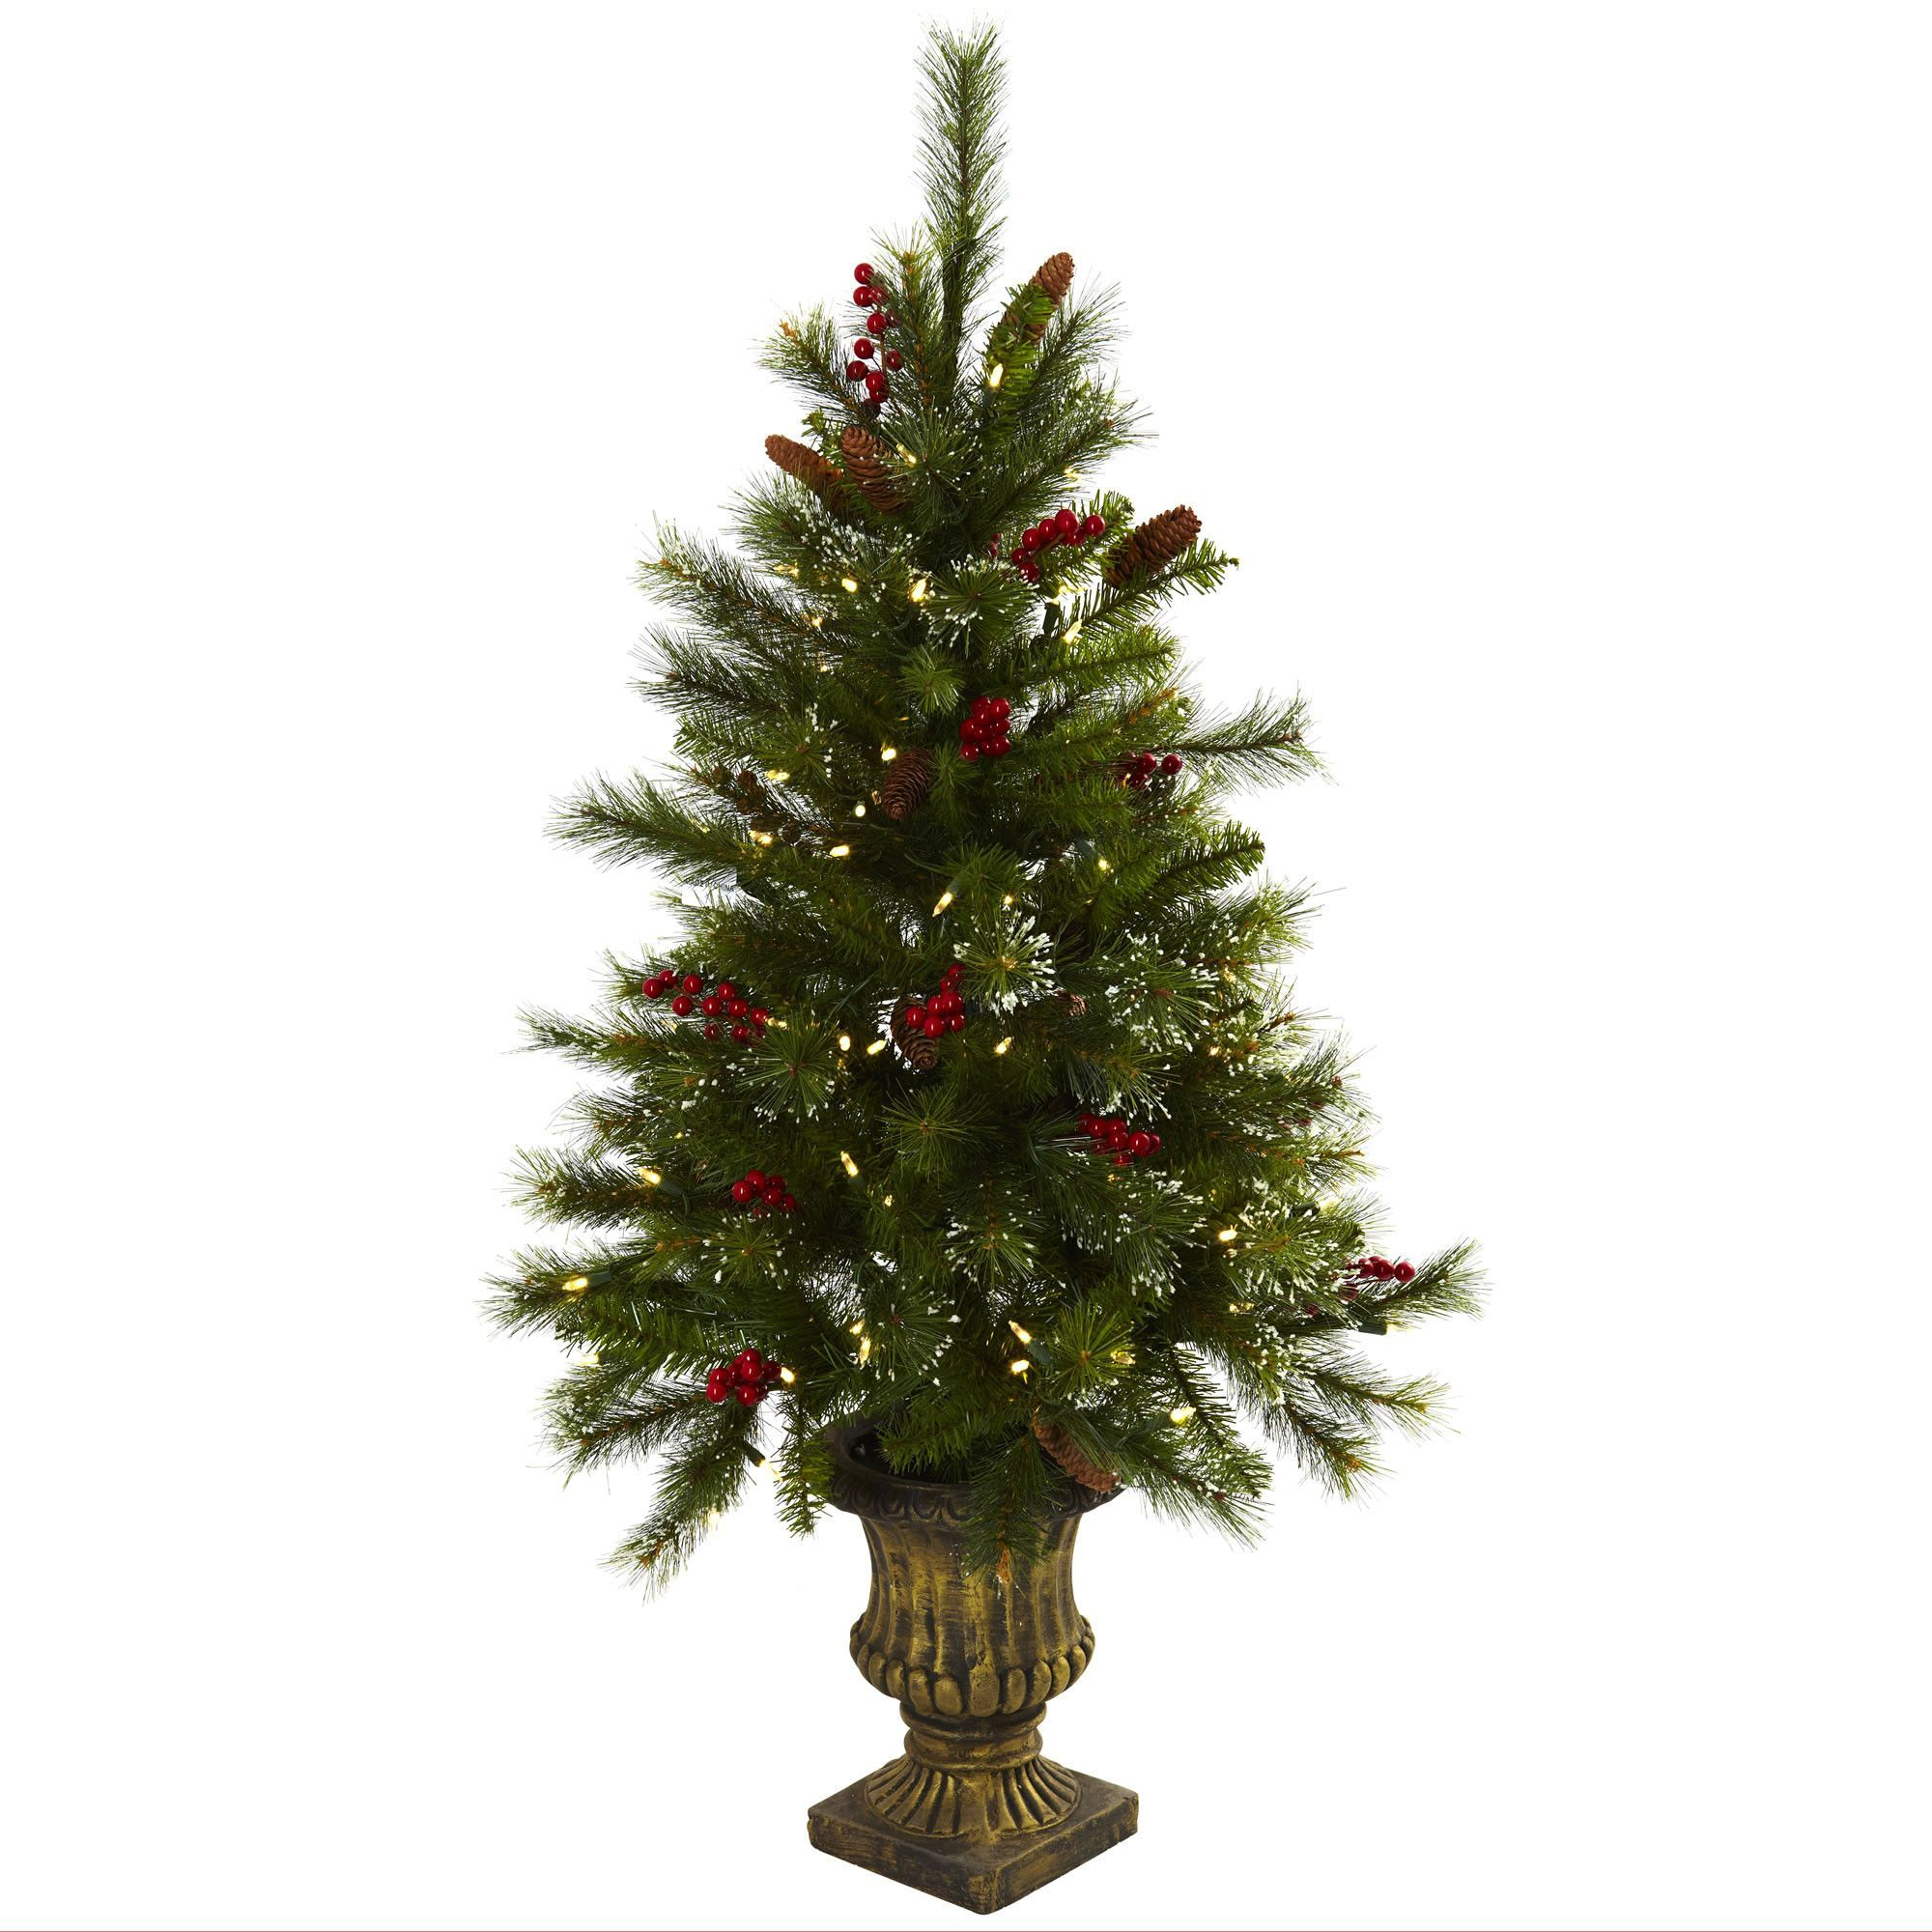 Decorative Urn Awesome 4 Christmas Tree Wberries Pine Cones Led Lights & Decorative Decorating Design